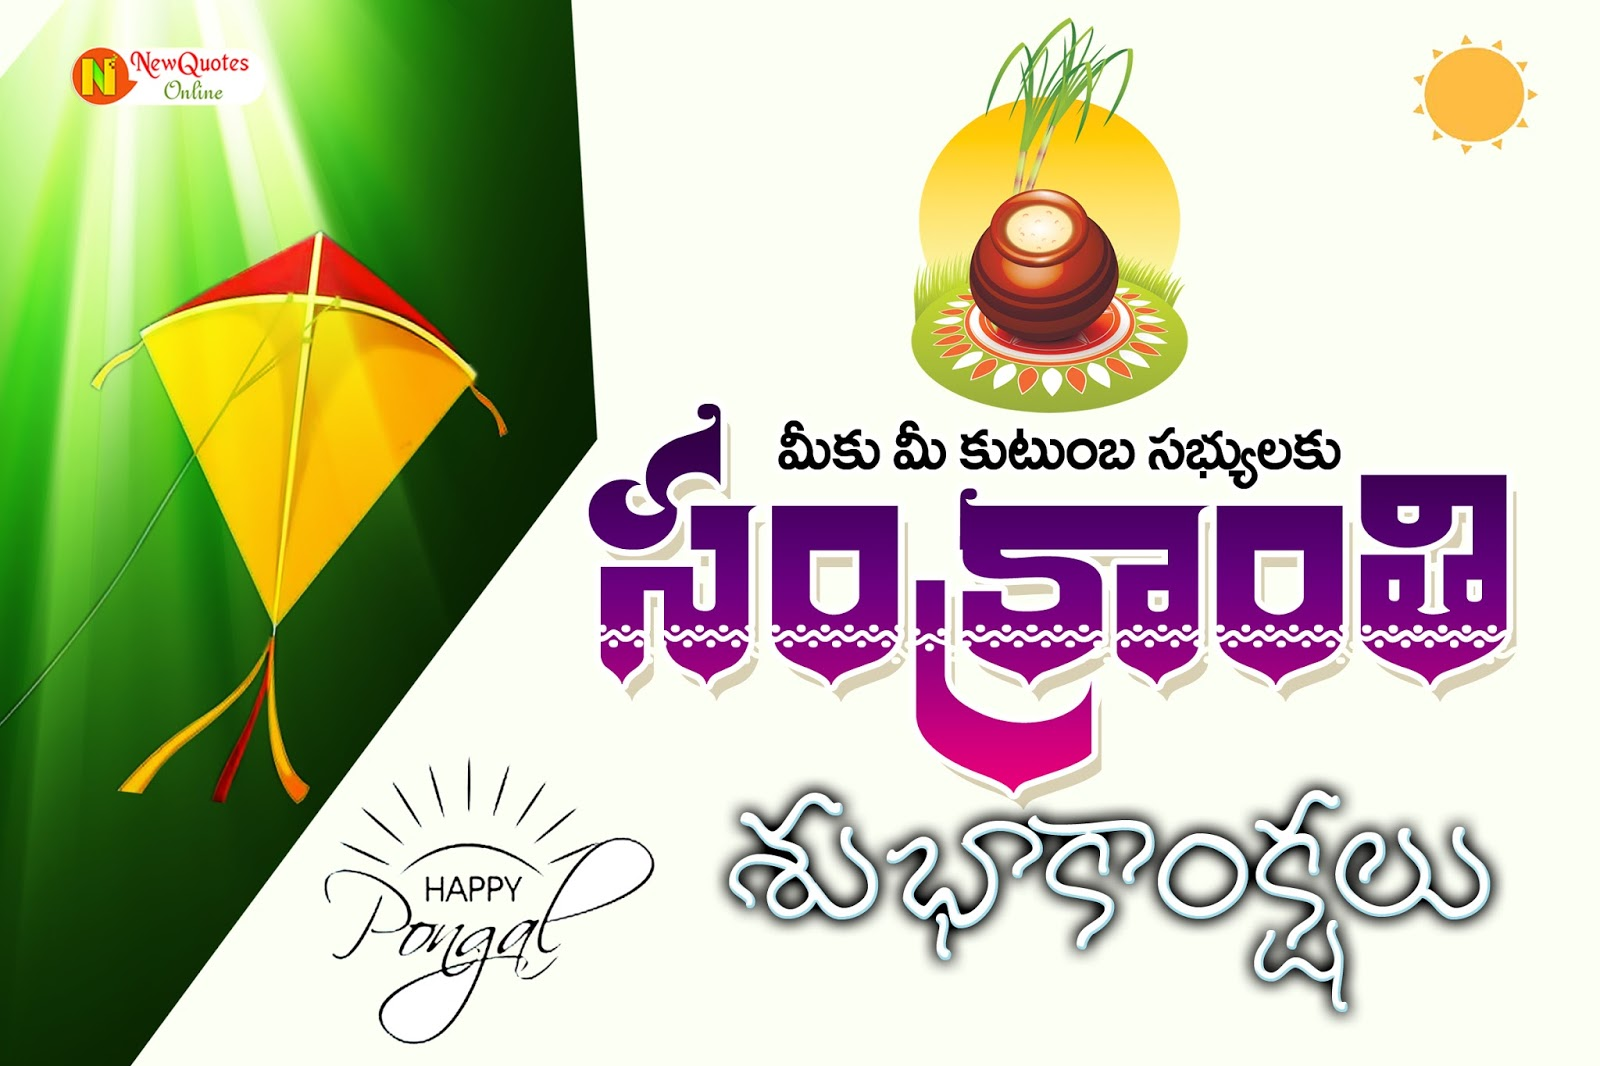 Nice sankranti greetings images pictures for family members in happy sankranti kanuma telugu wishes quotes greetings sms m4hsunfo